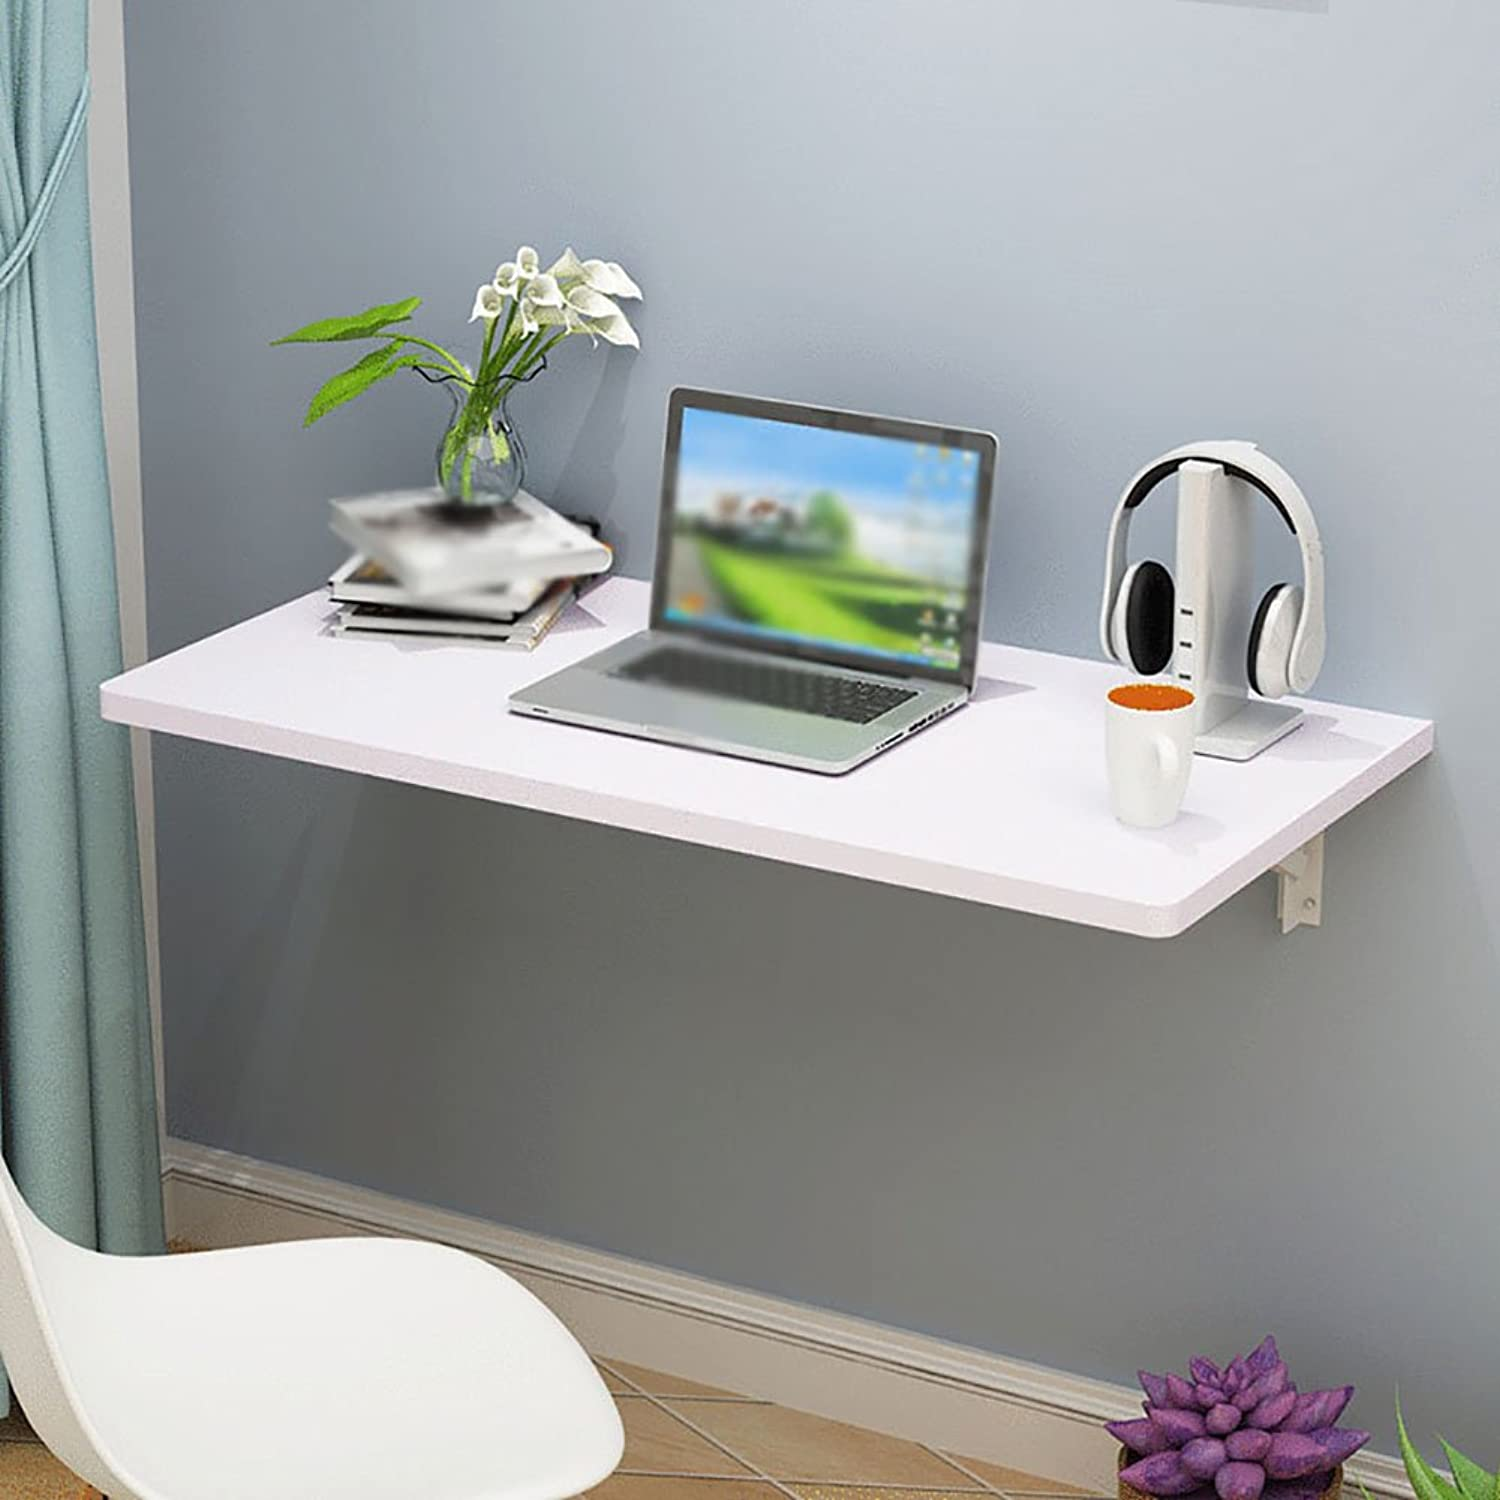 LXF Wall-mounted folding table Simple Wall Tables Fillet Safety Design Waterproof Collapsible Save Space (Size   60  40cm)